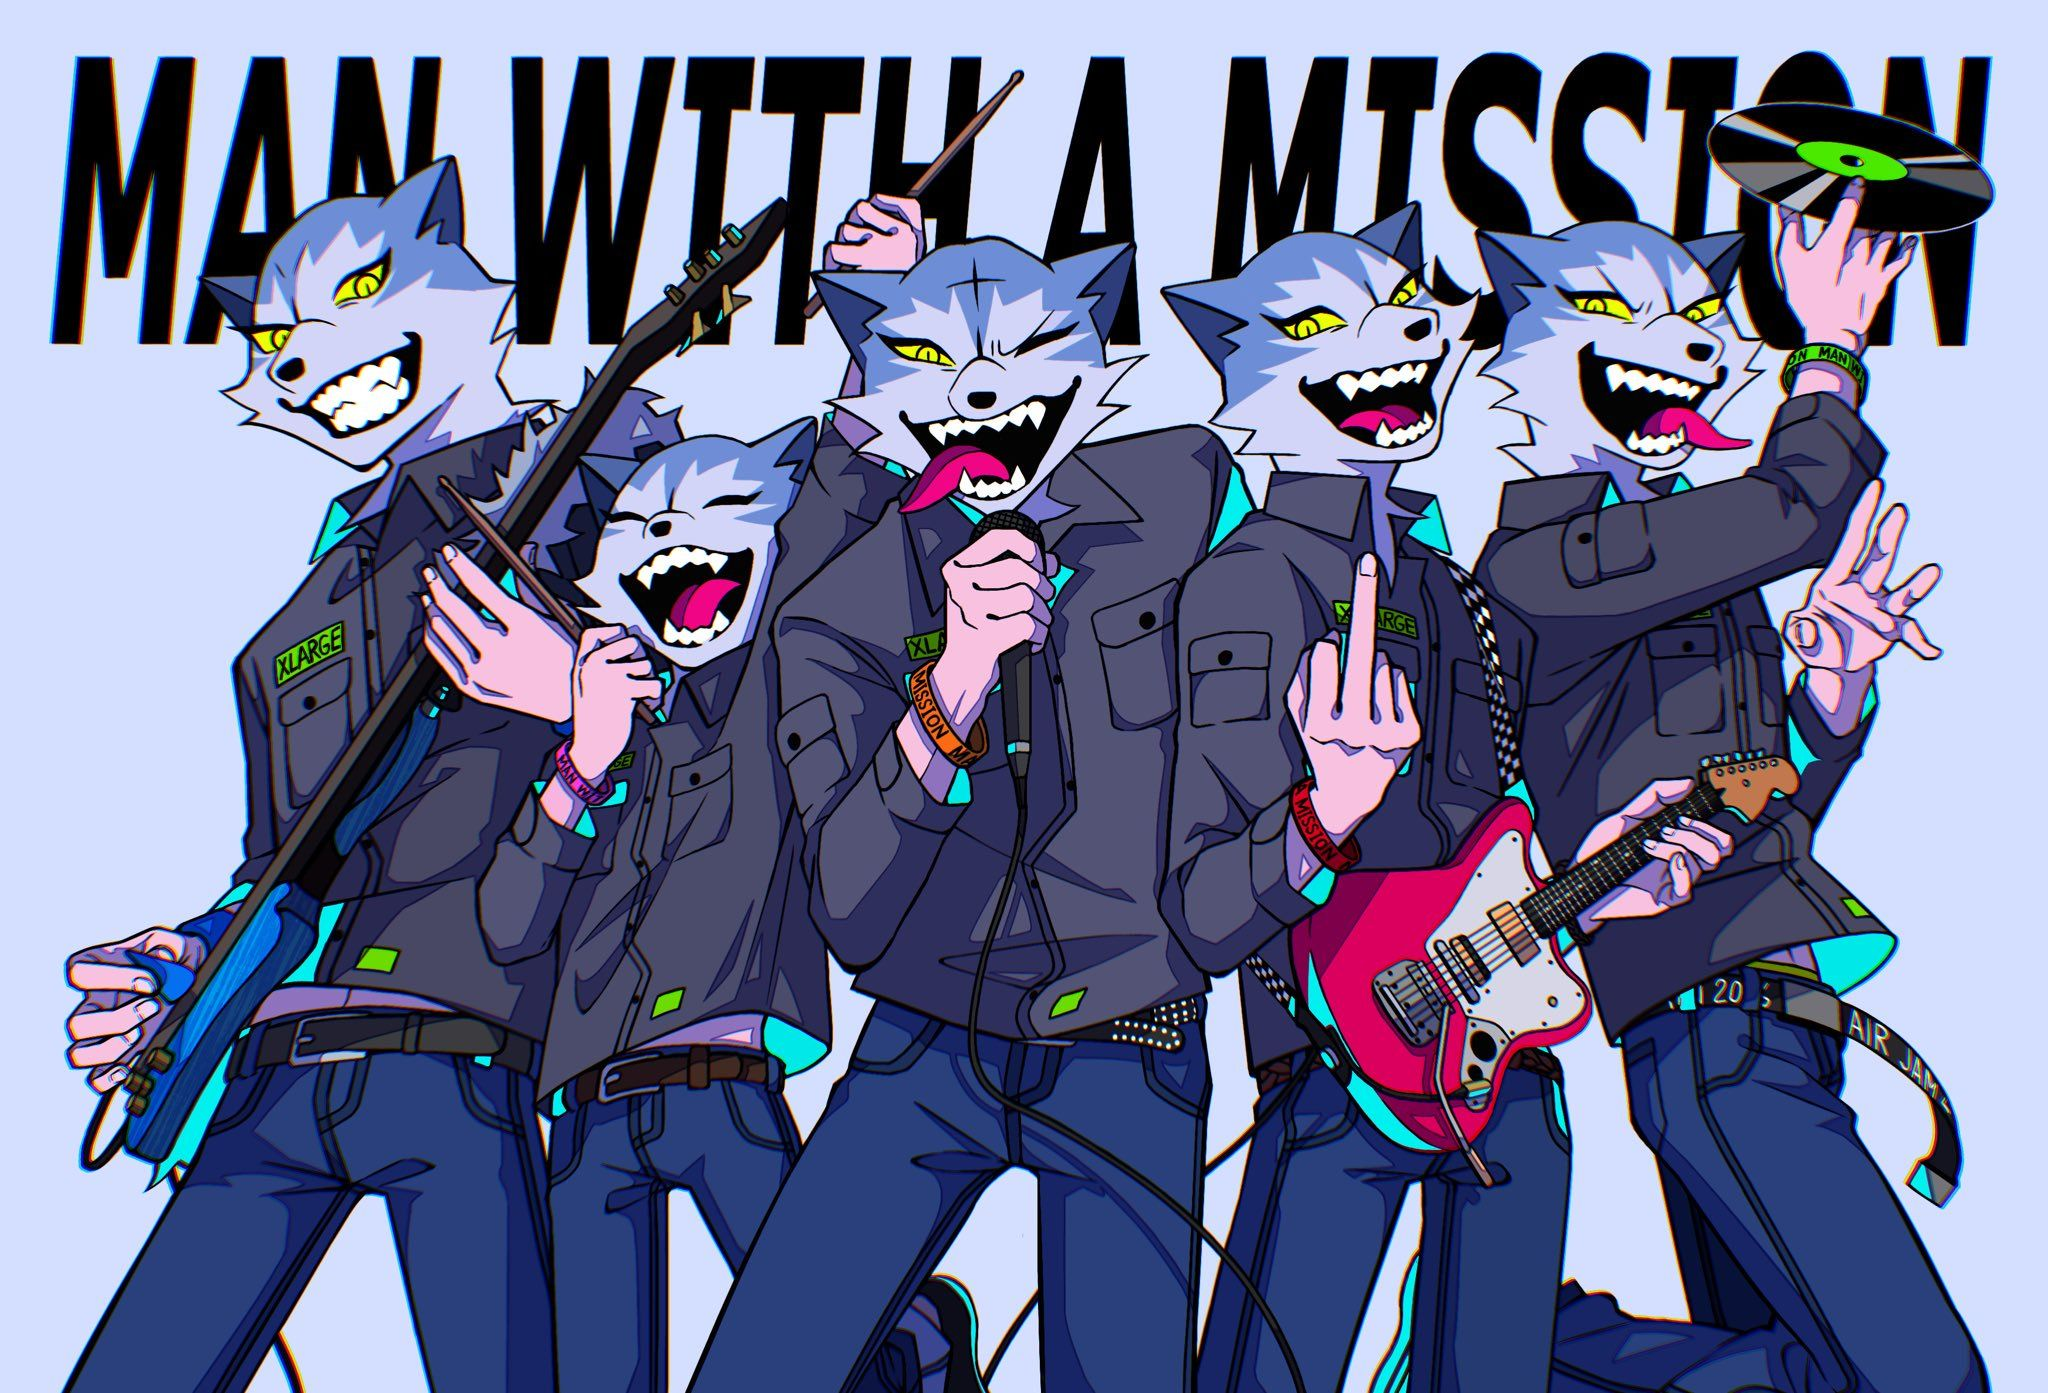 Pin on Man With A Mission